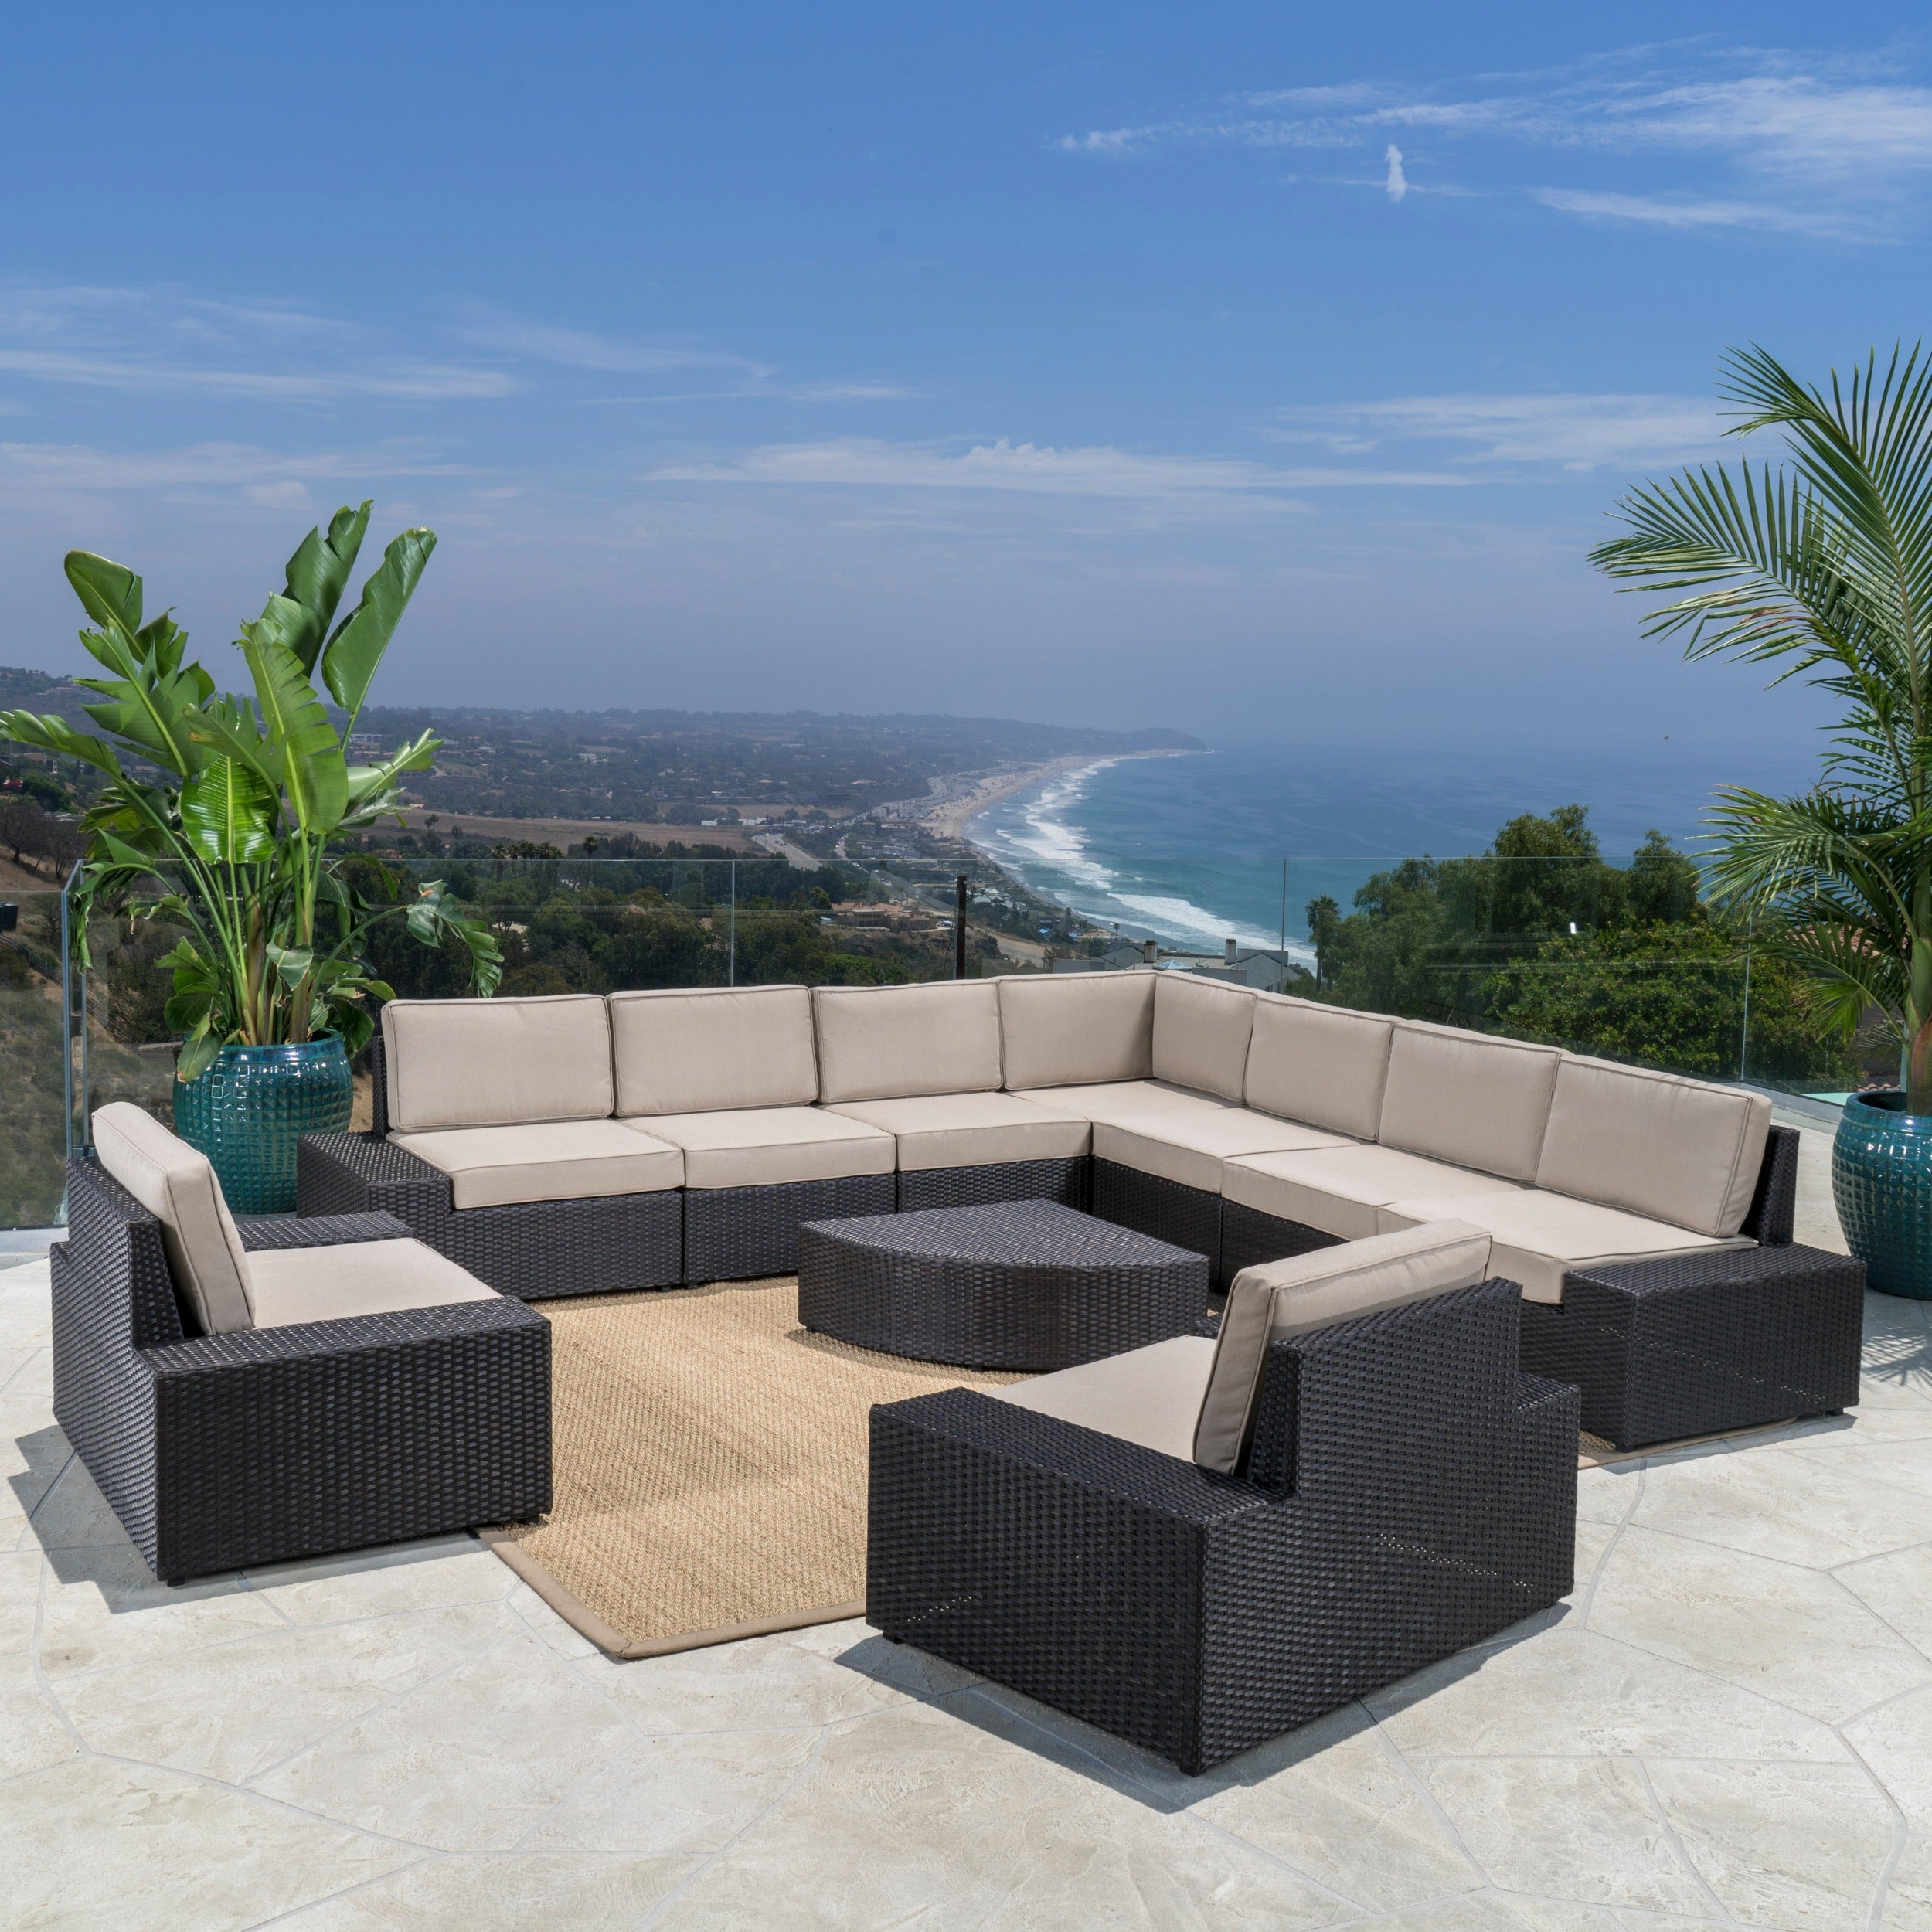 Shop Santa Cruz Outdoor 10 Piece Wicker Sectional Sofa Set With Cushions By  Christopher Knight Home   On Sale   Free Shipping Today   Overstock.com    ...